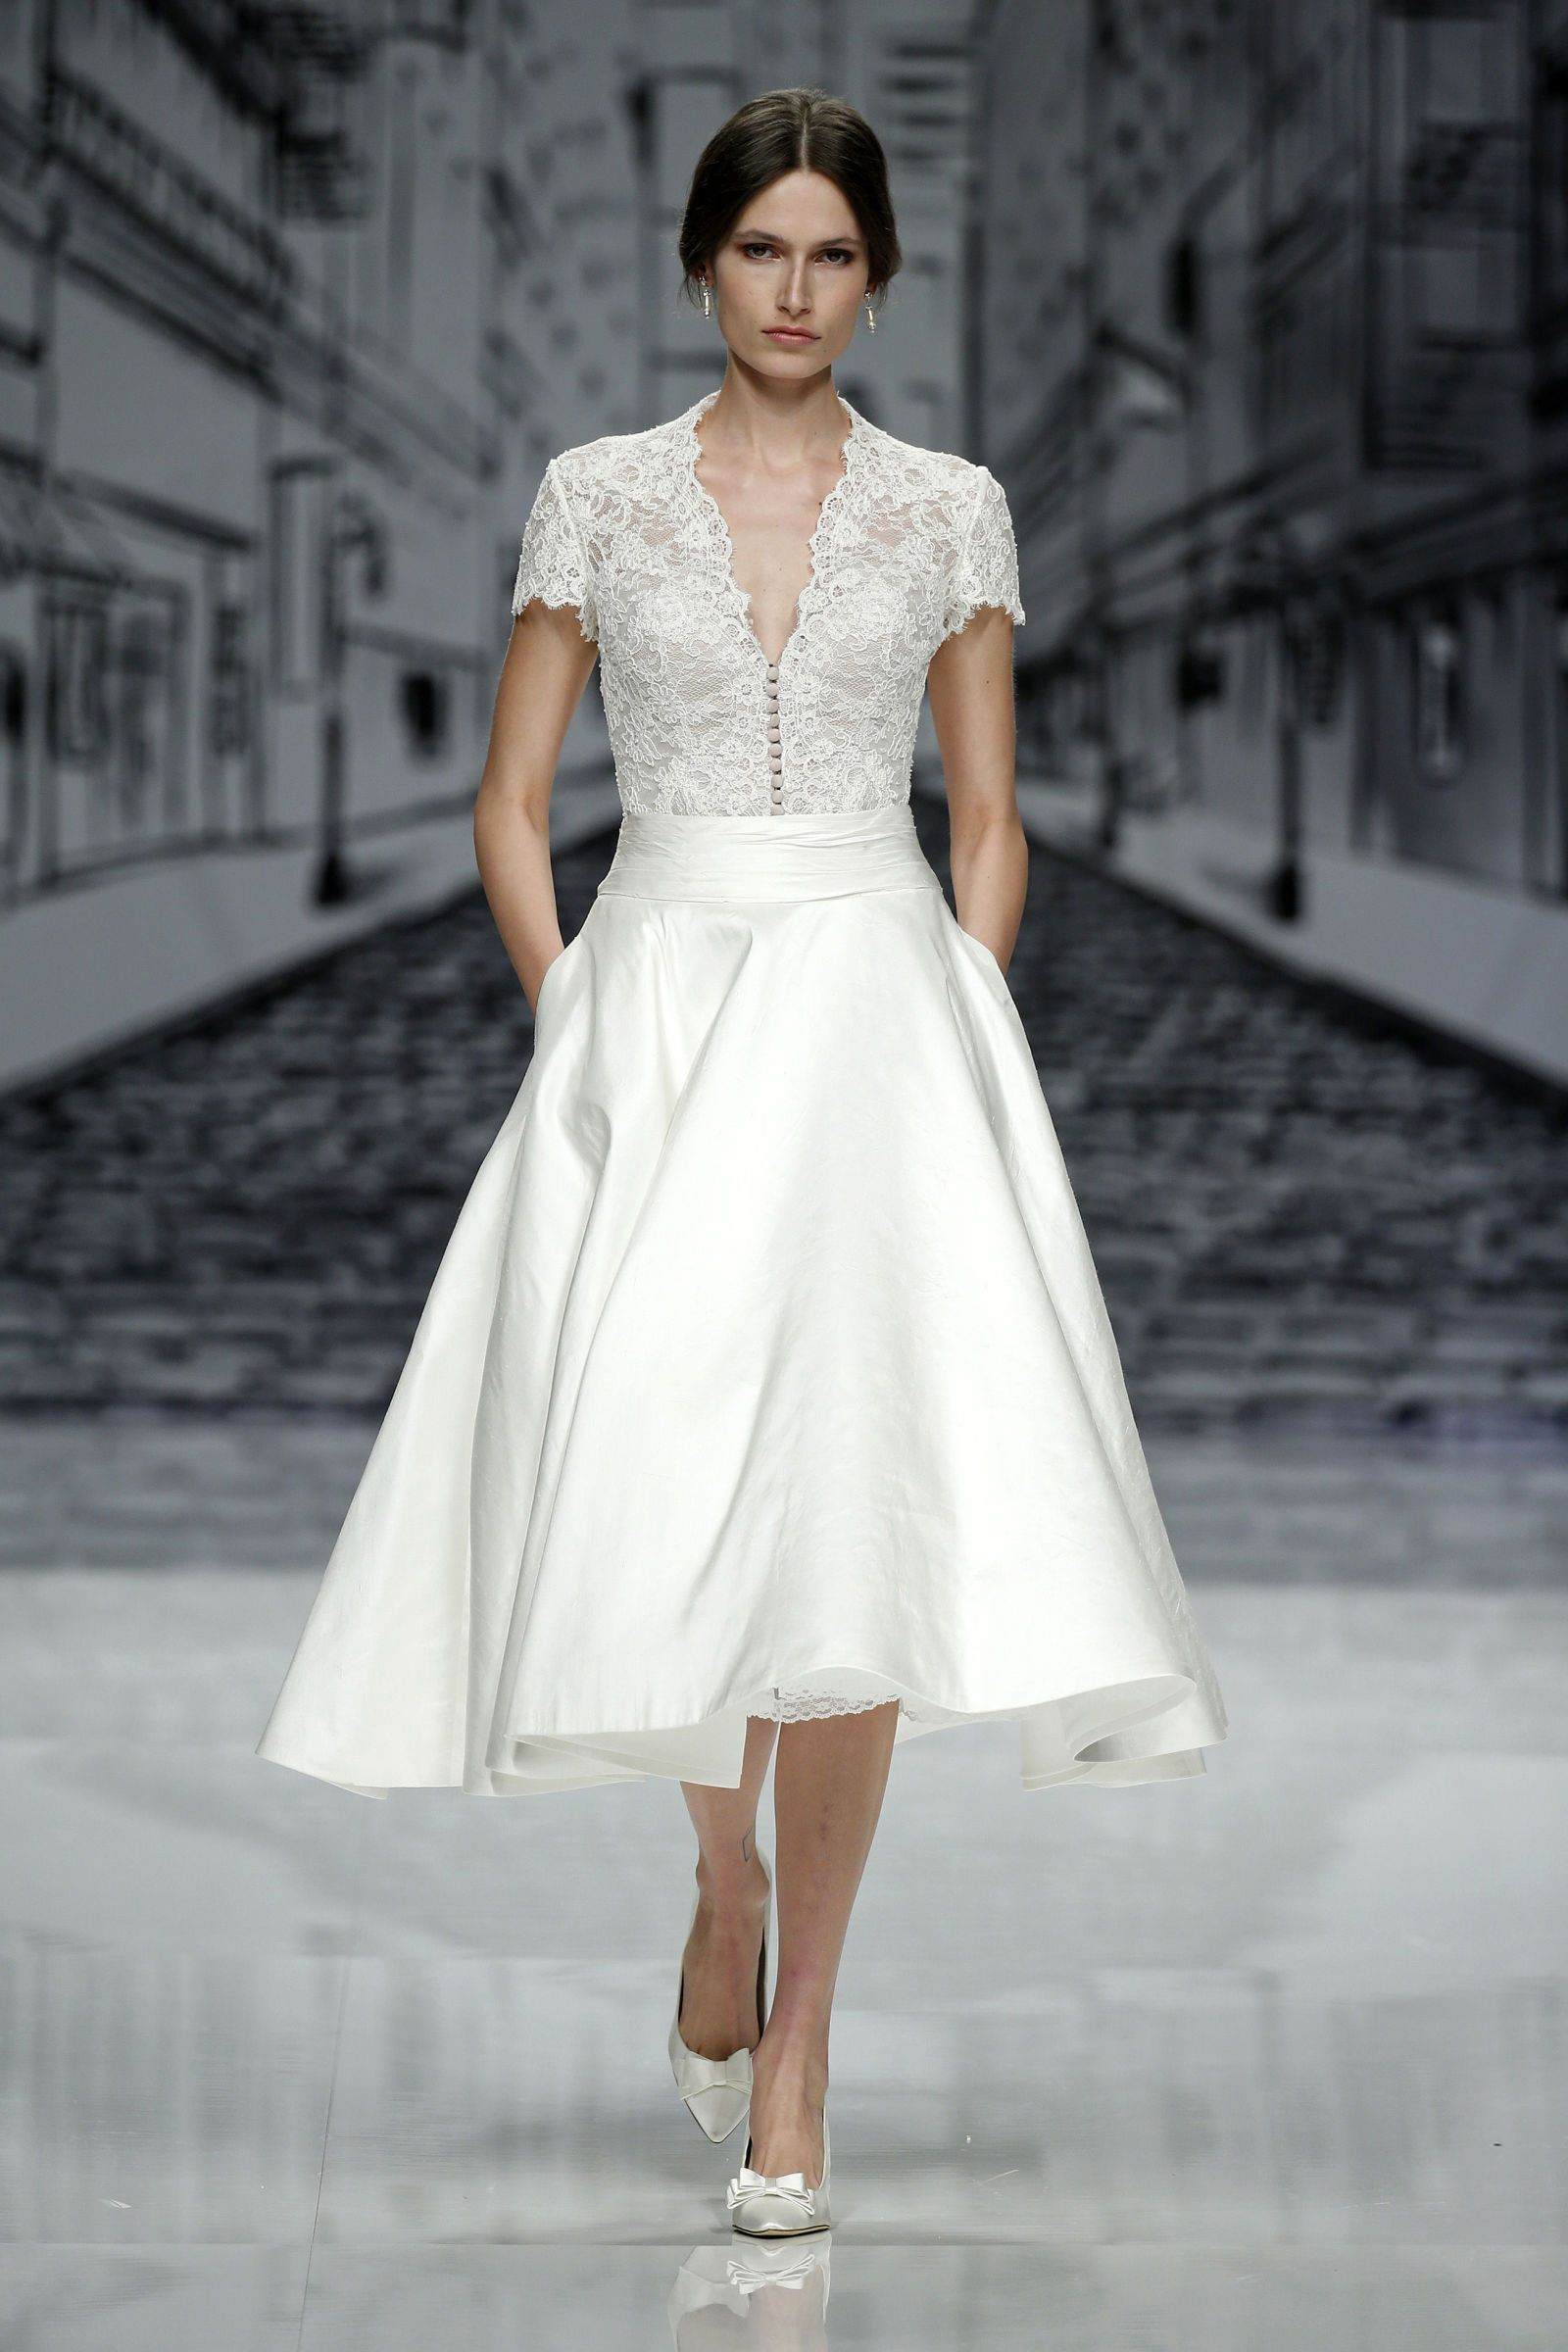 The best short wedding dresses from fall bridal week